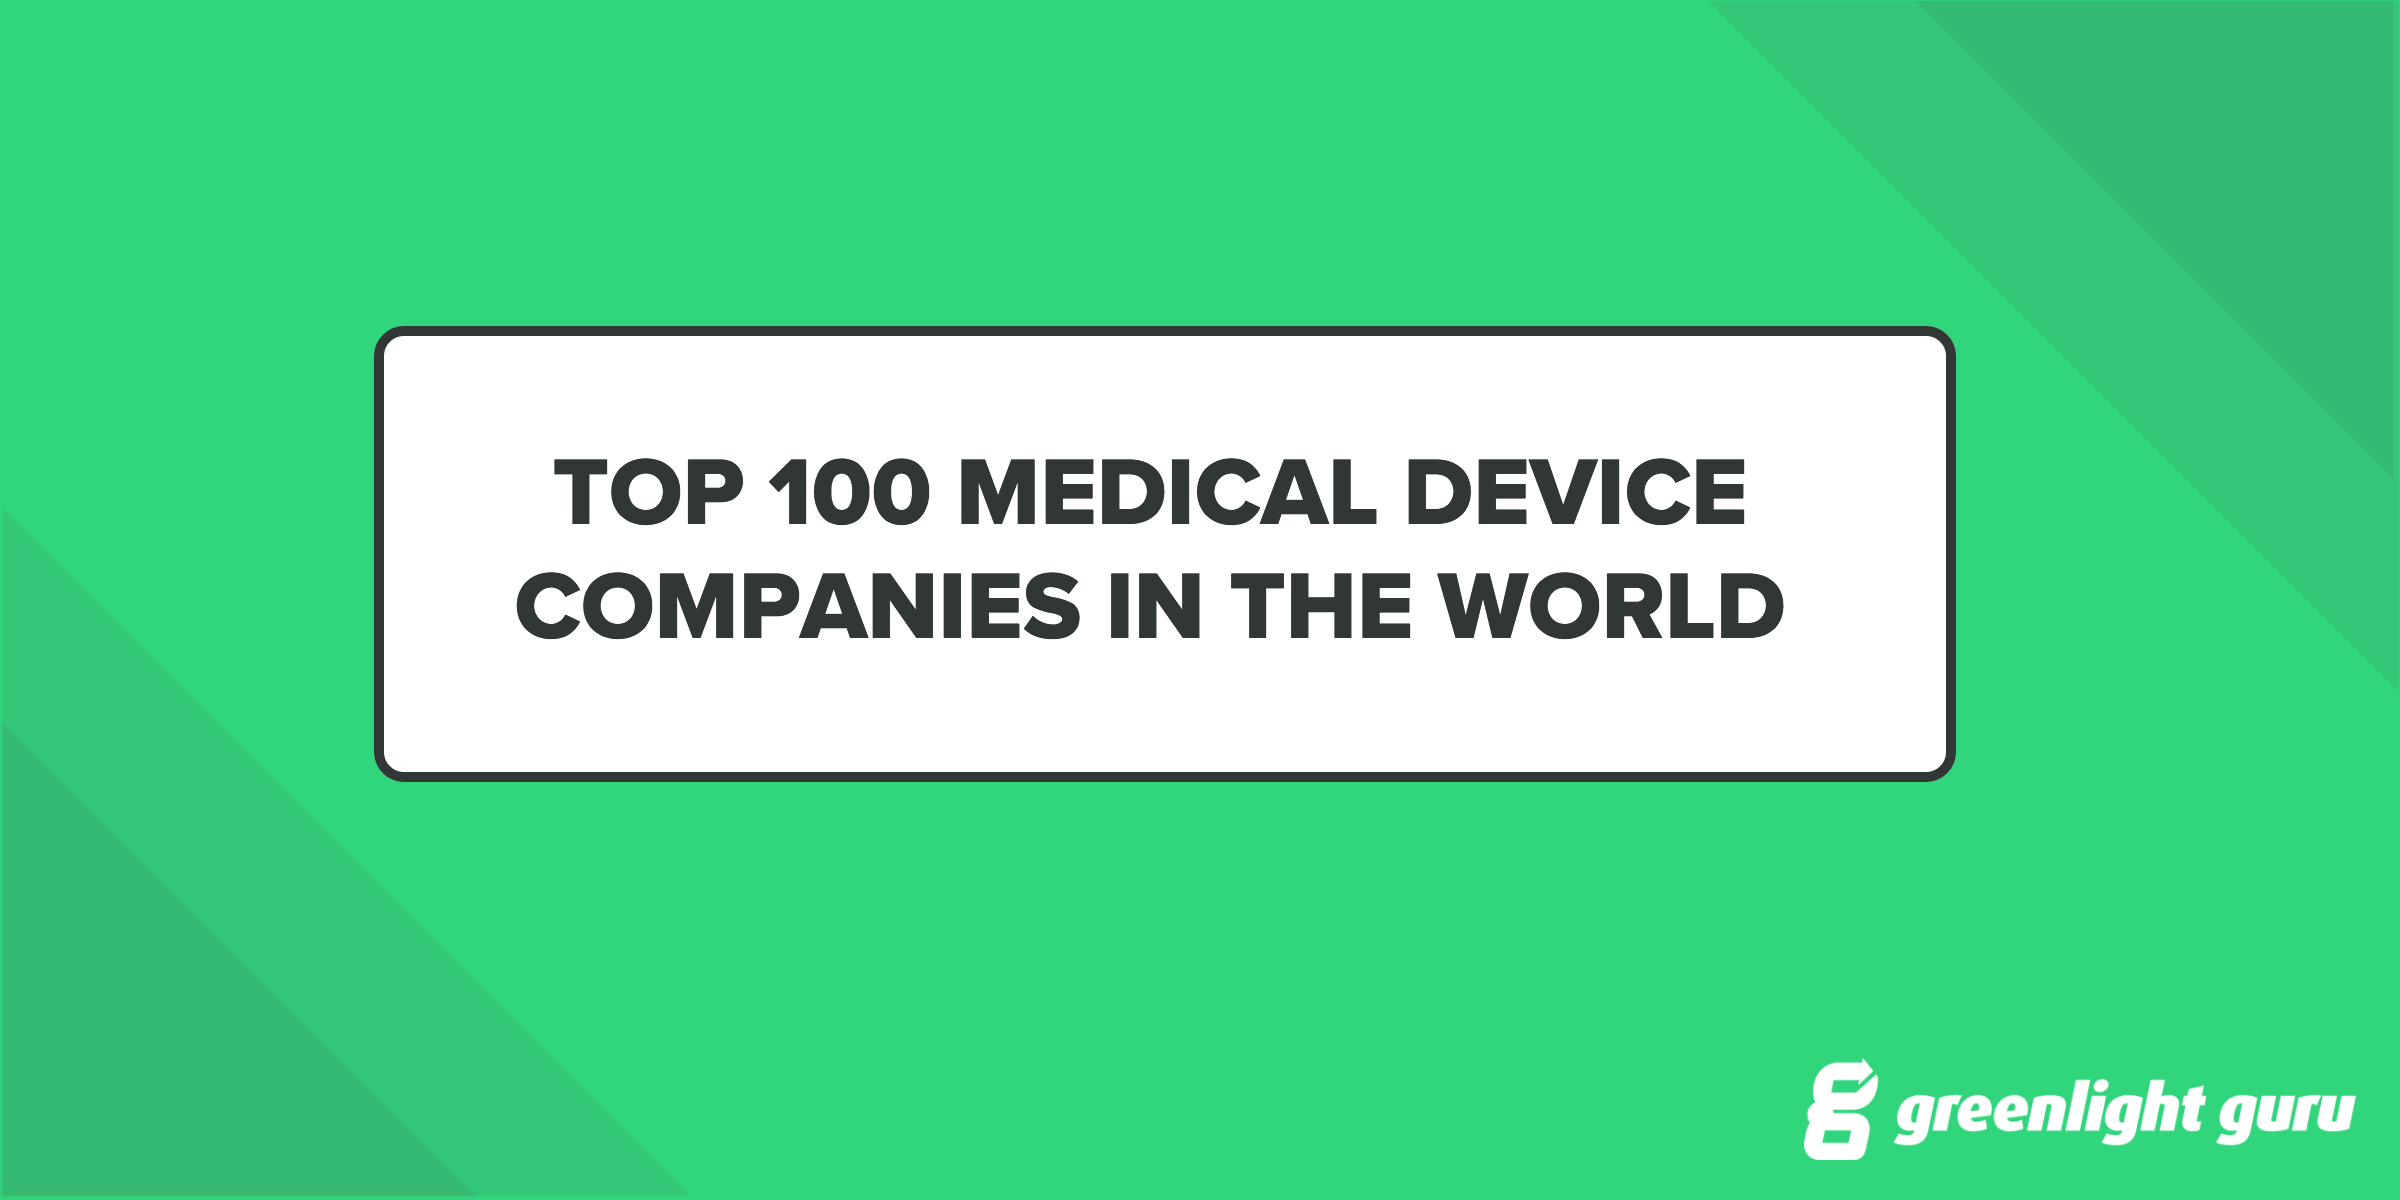 Medical Device Companies - Top 100 in 2018 (Free Chart) - Featured Image